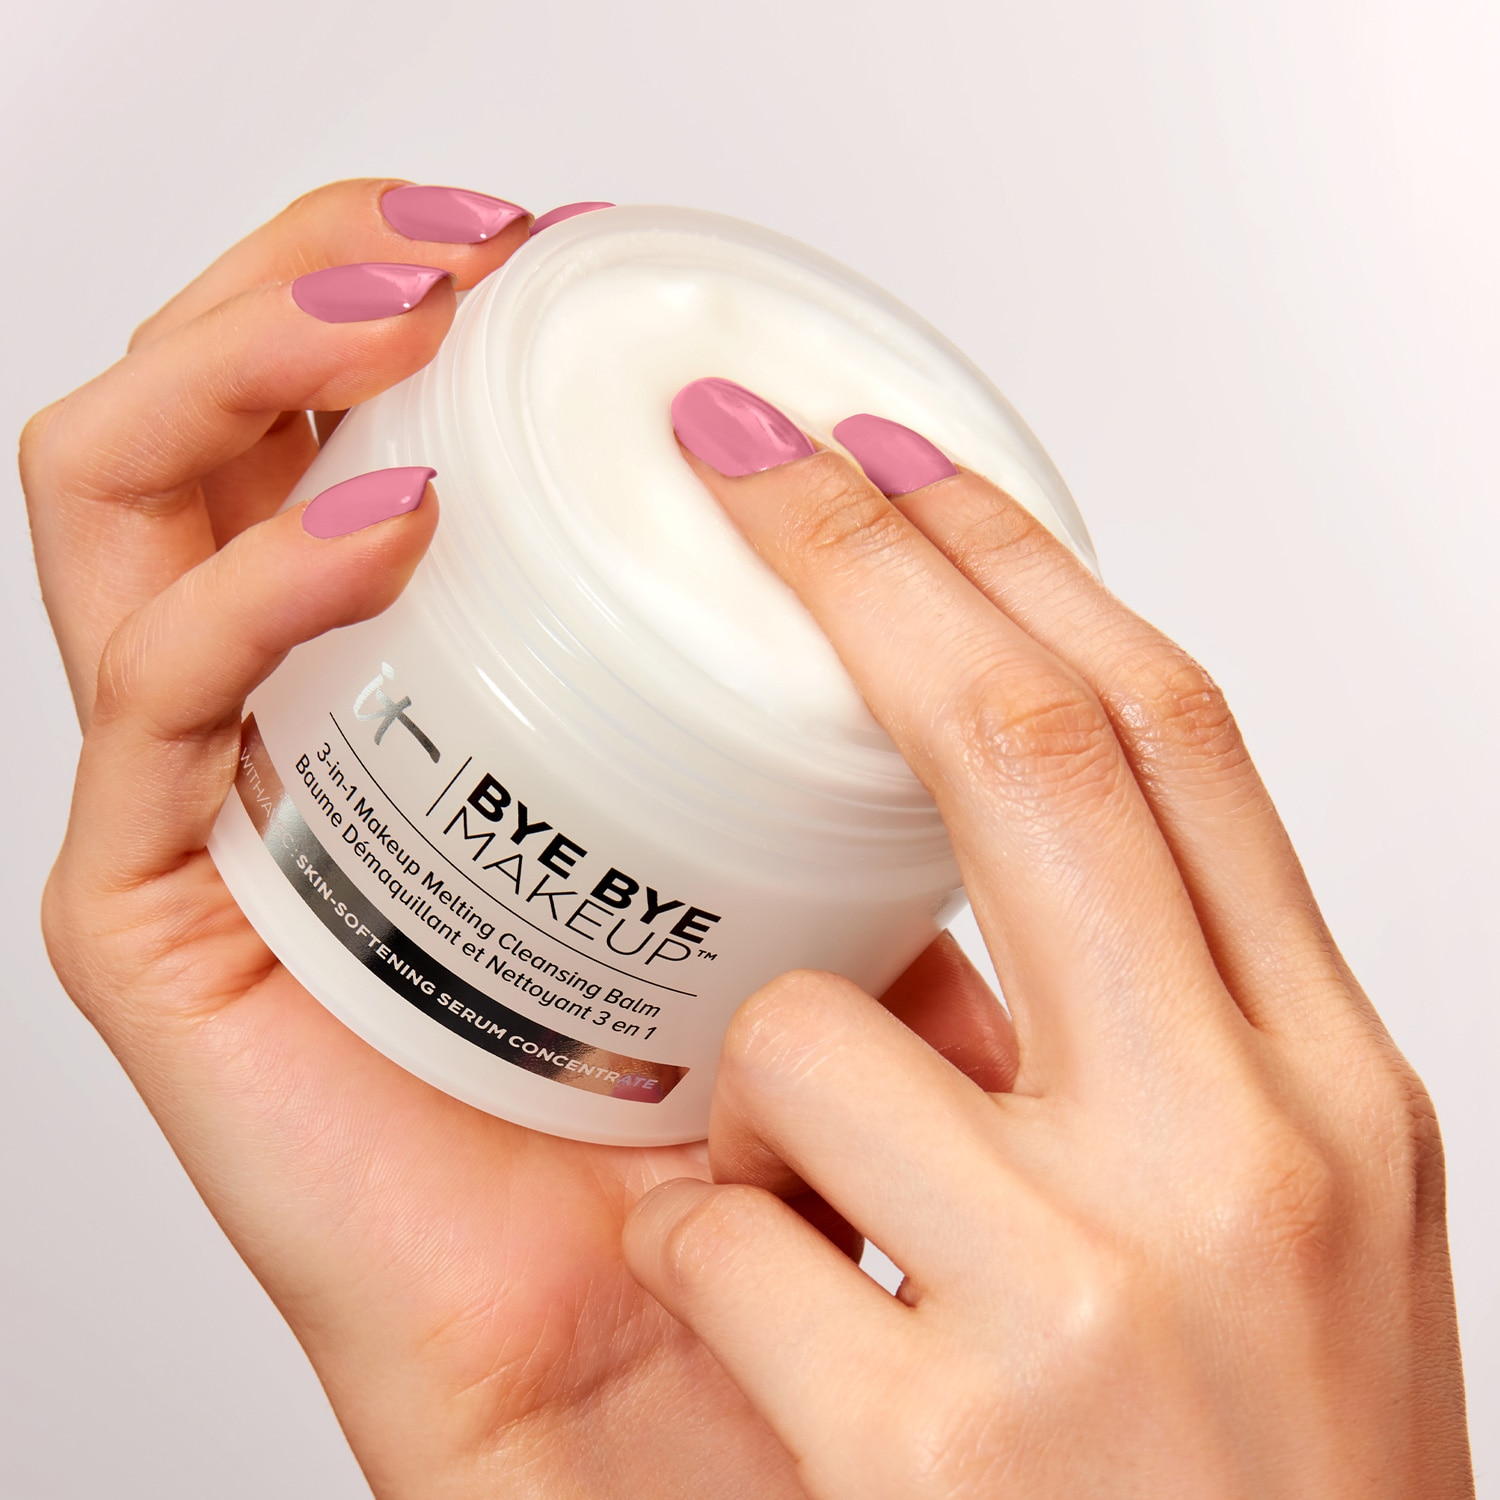 BYE BYE MAKEUP™ 3-IN-1 MAKEUP MELTING BALM (DESMAQUILLANTE FACIAL)